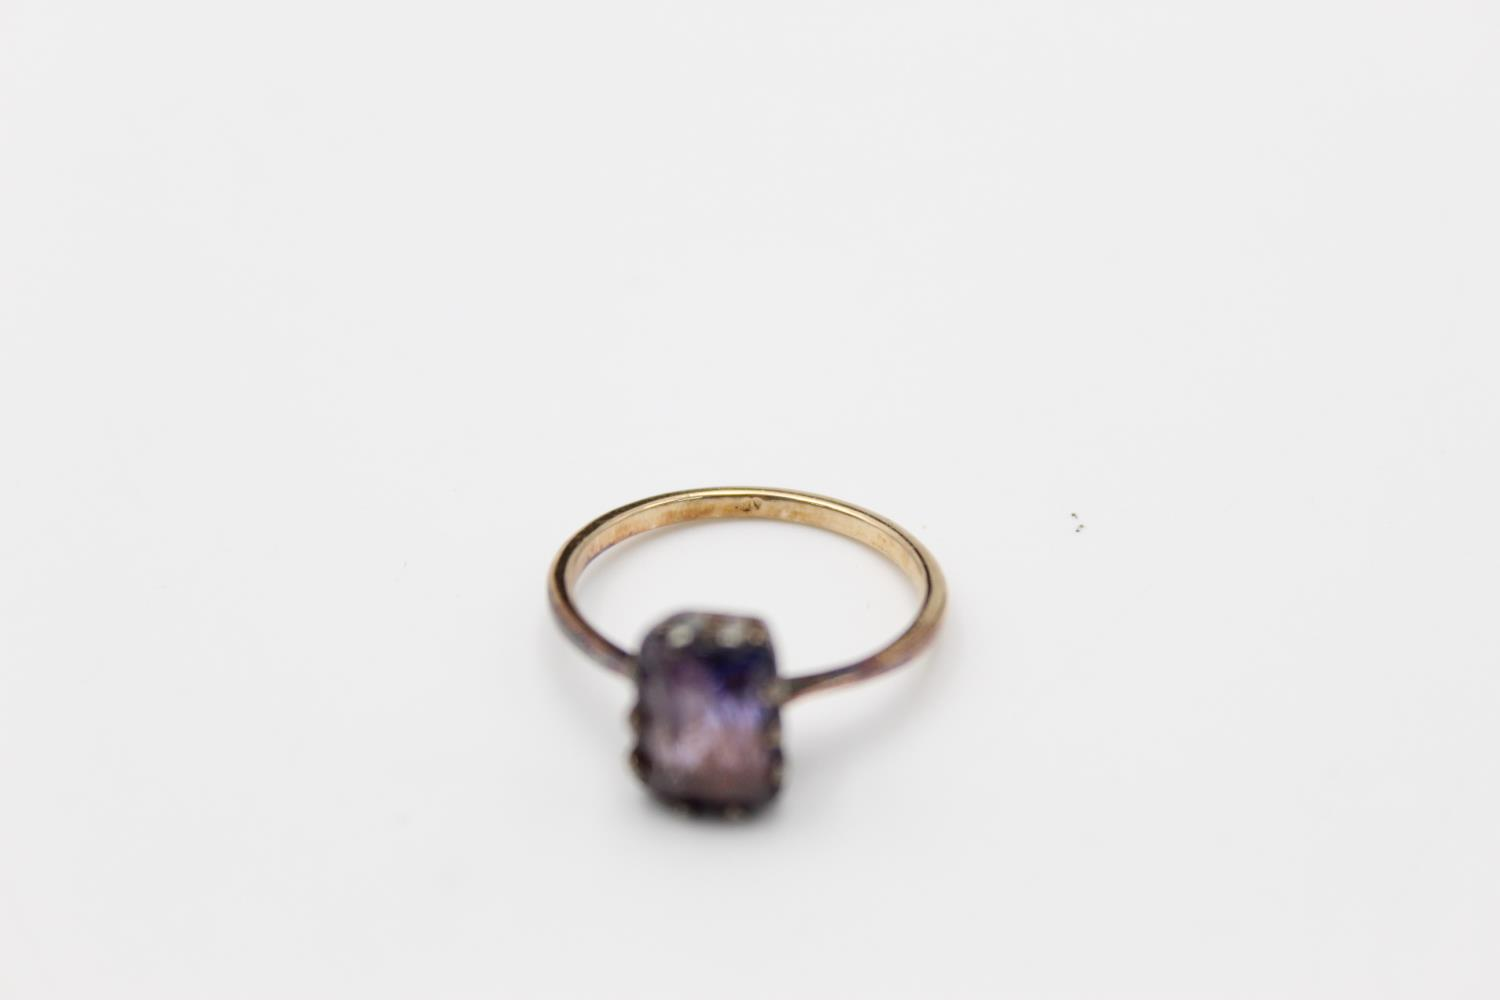 vintage 14ct gold synthetic colour change sapphire ring 2.5g Size N - Image 4 of 4